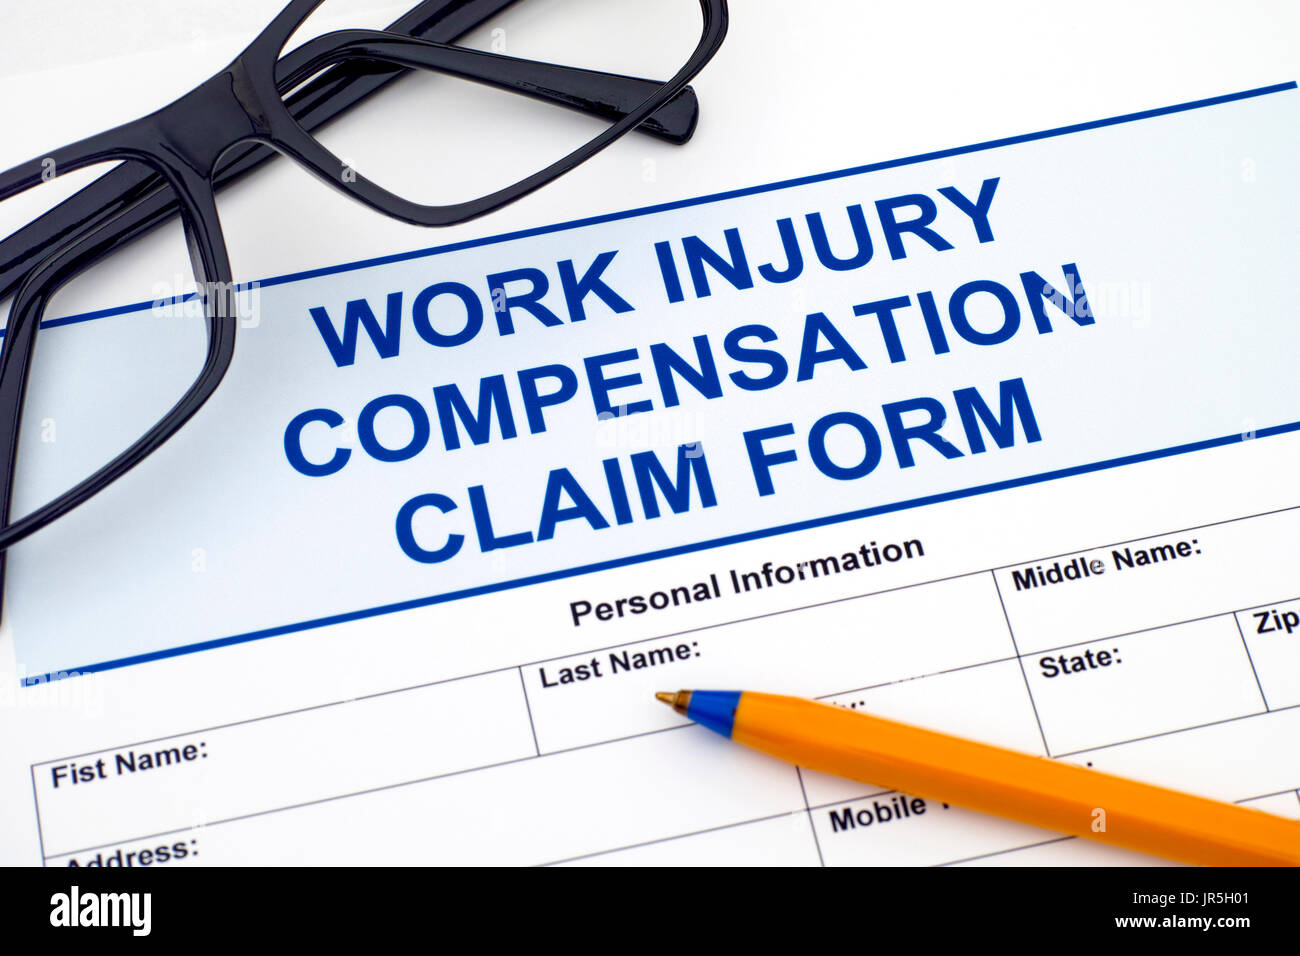 Work Injury Compensation Claim Form with ballpoint pen and glasses. - Stock Image